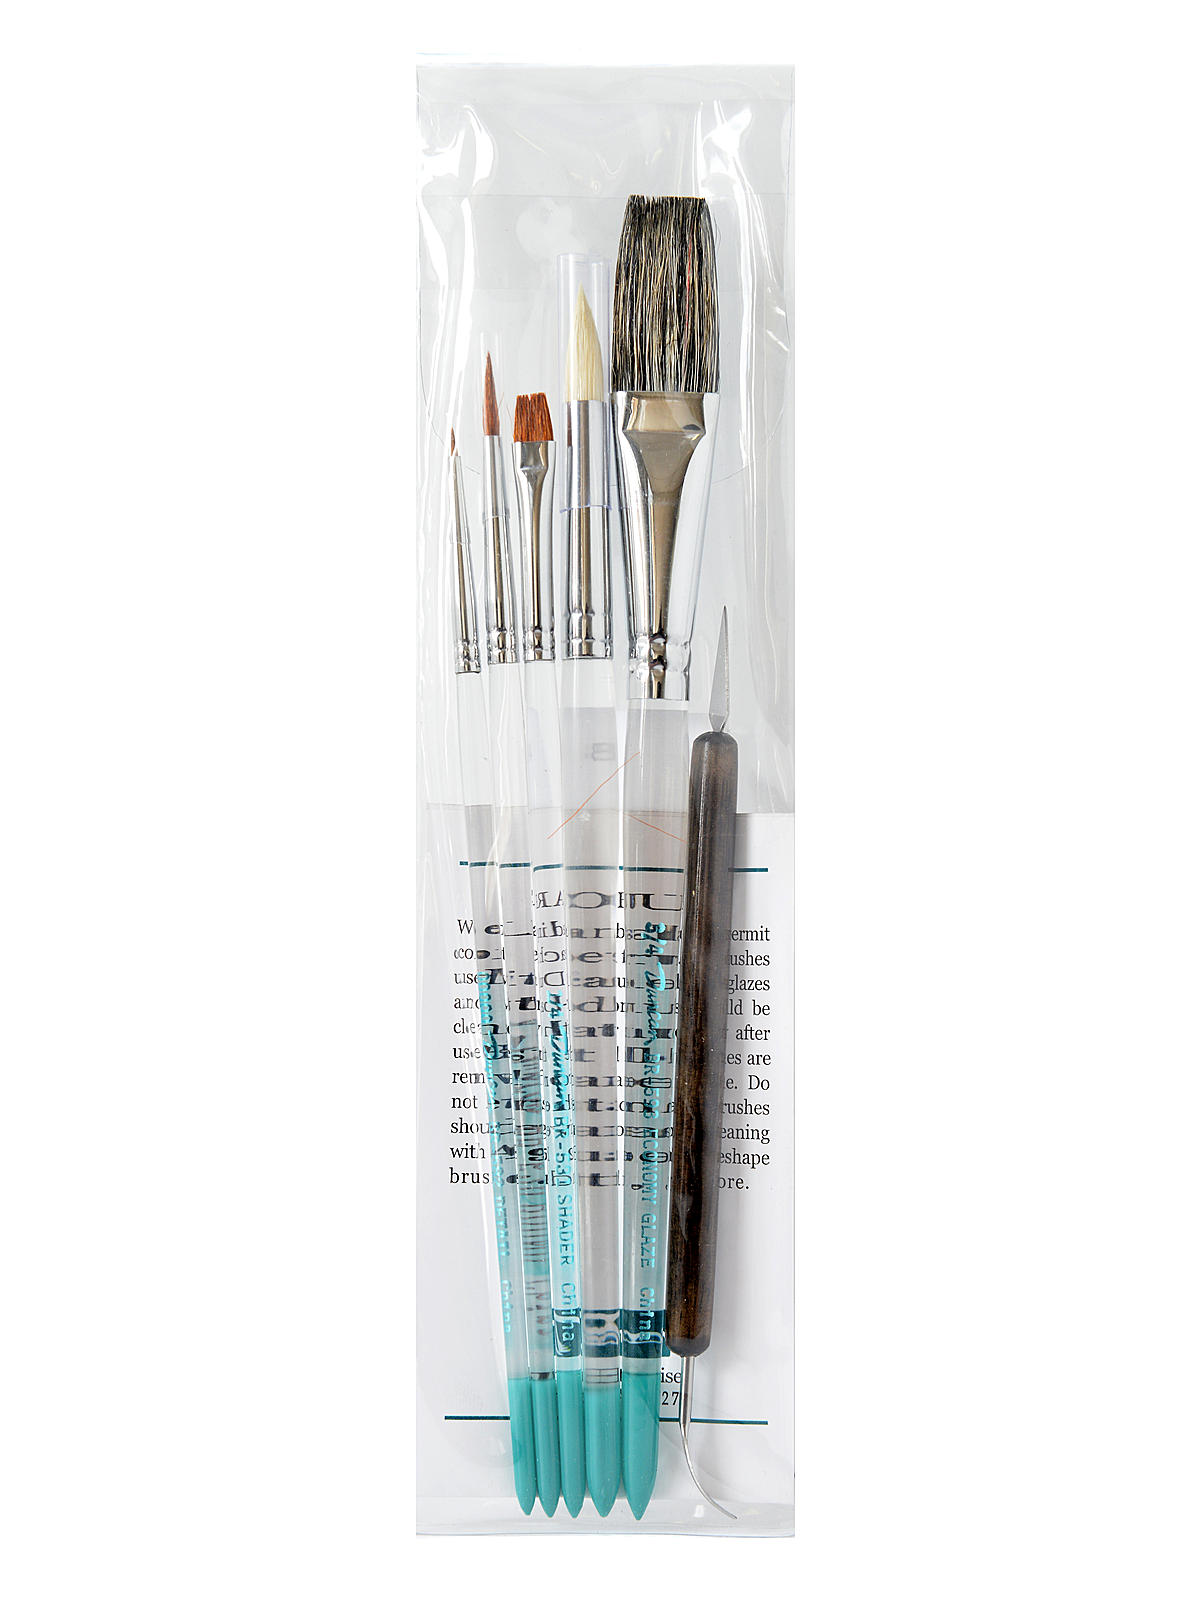 Introductory Brush & Tool Kit